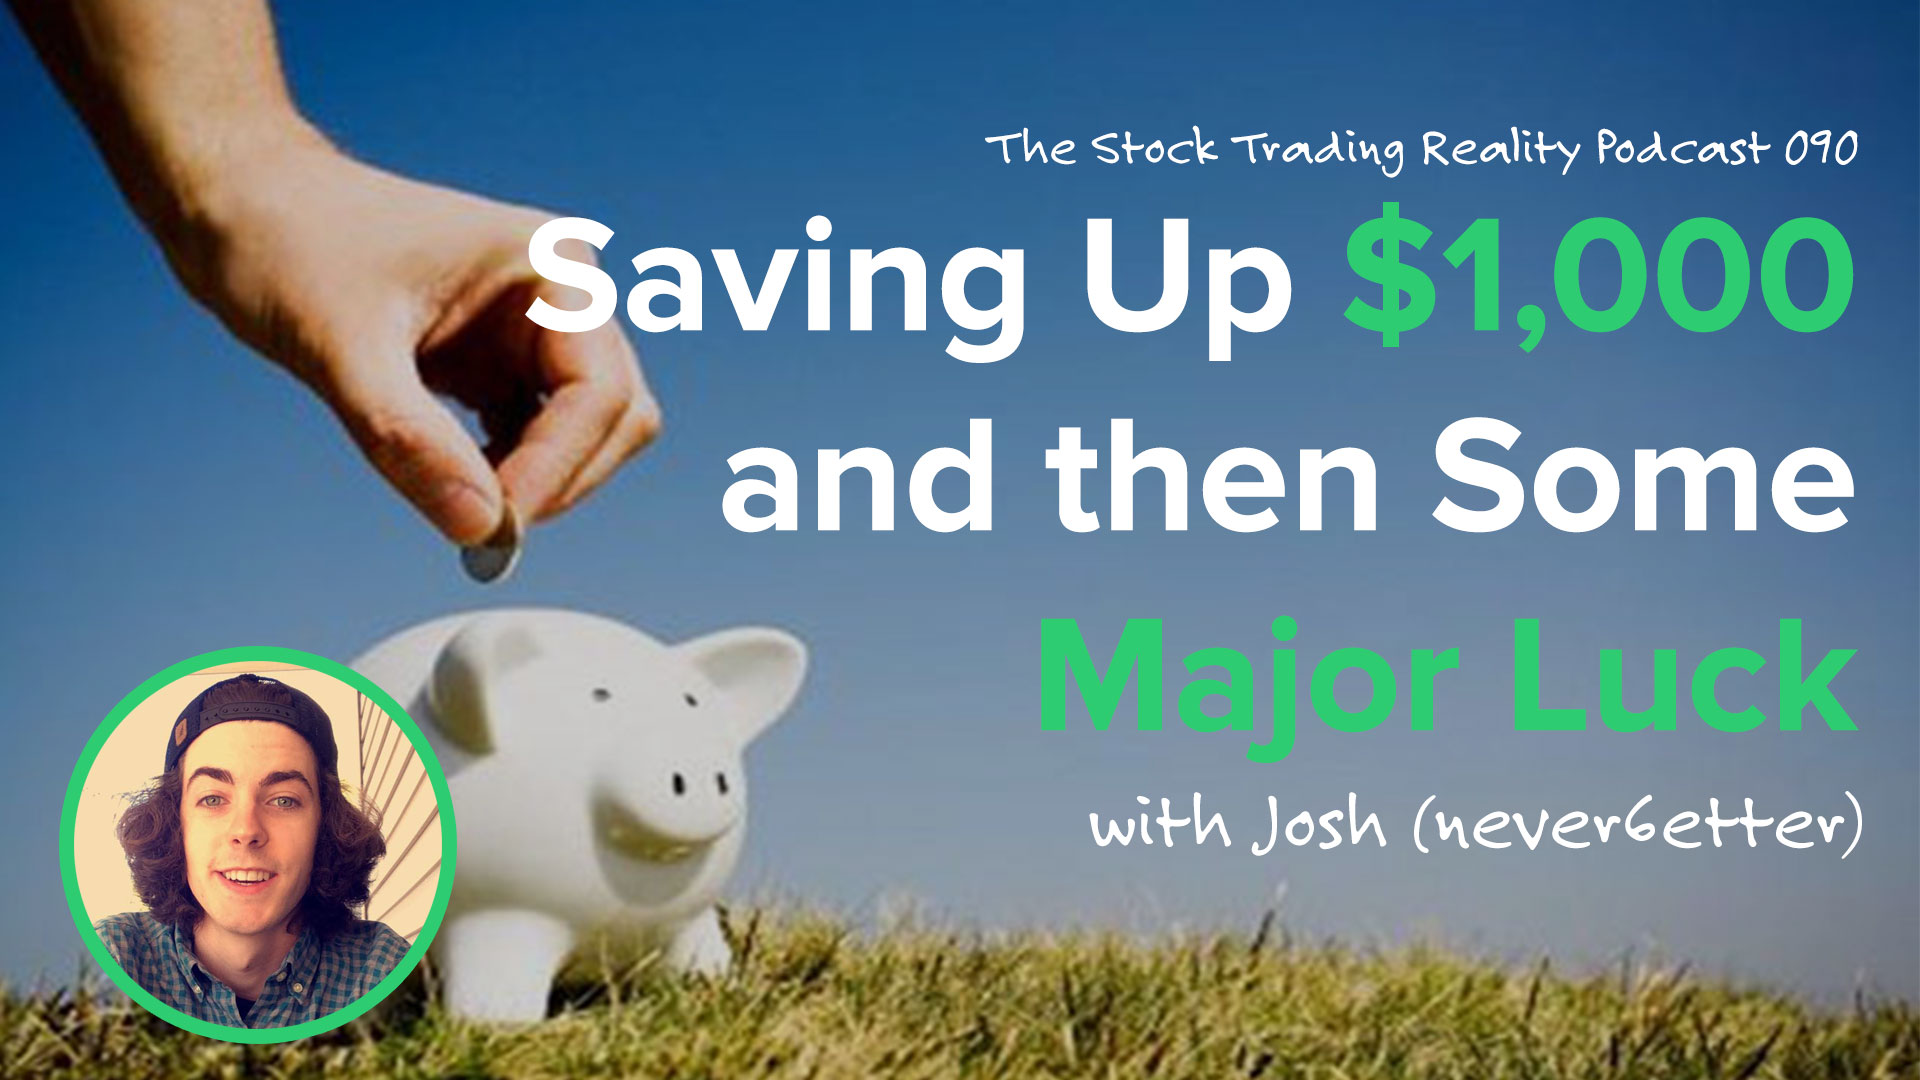 STR 090: Saving Up $1,000 and then Some Major Luck